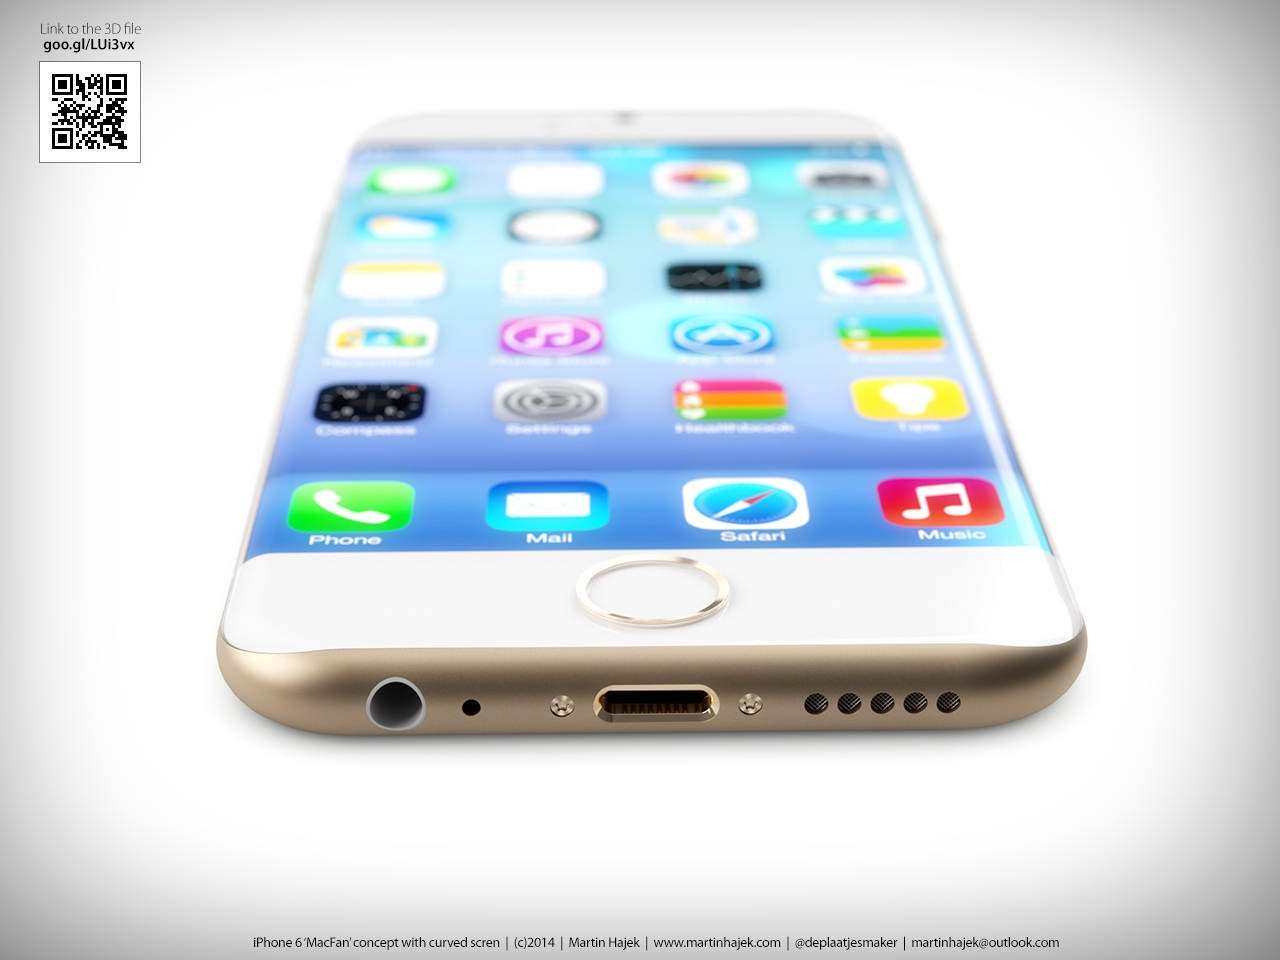 iPhone 6 (Martin Hajek 013)